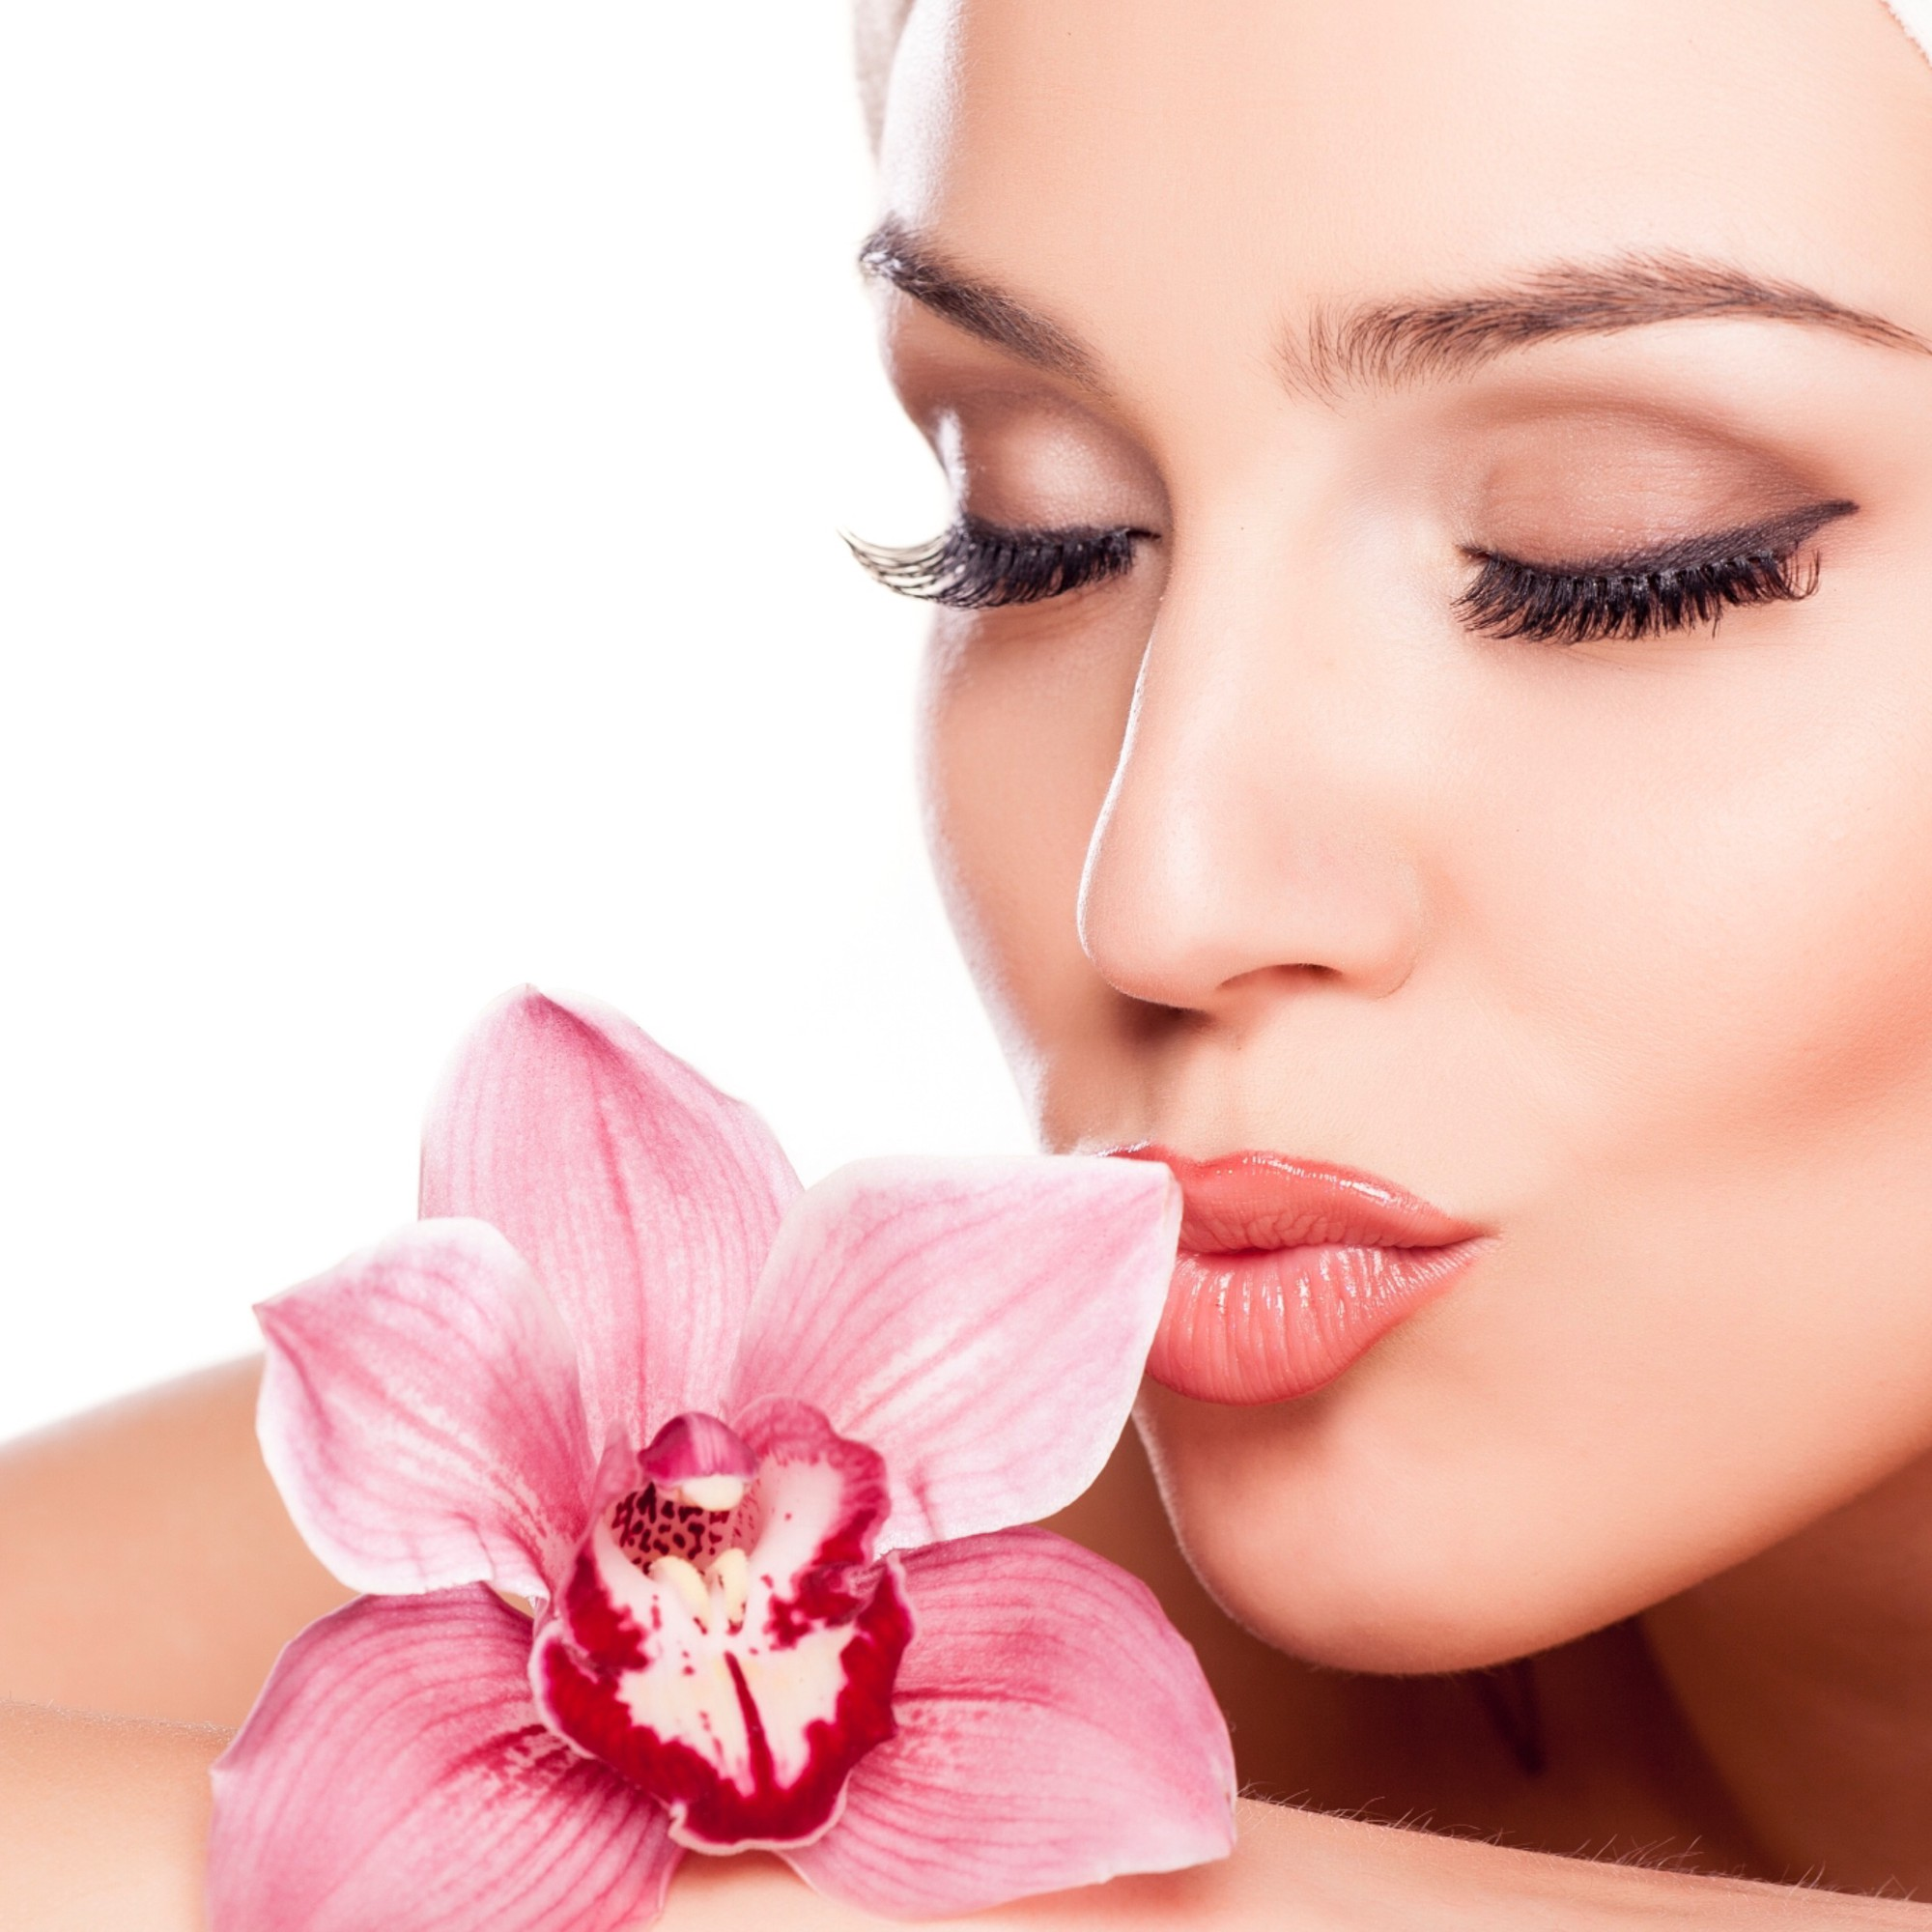 SUMMER SALE- 3 PCA PEELS $275 *INCLUDES FREE FULL SIZE CLEANSER (TOTAL SAVINGS $110)